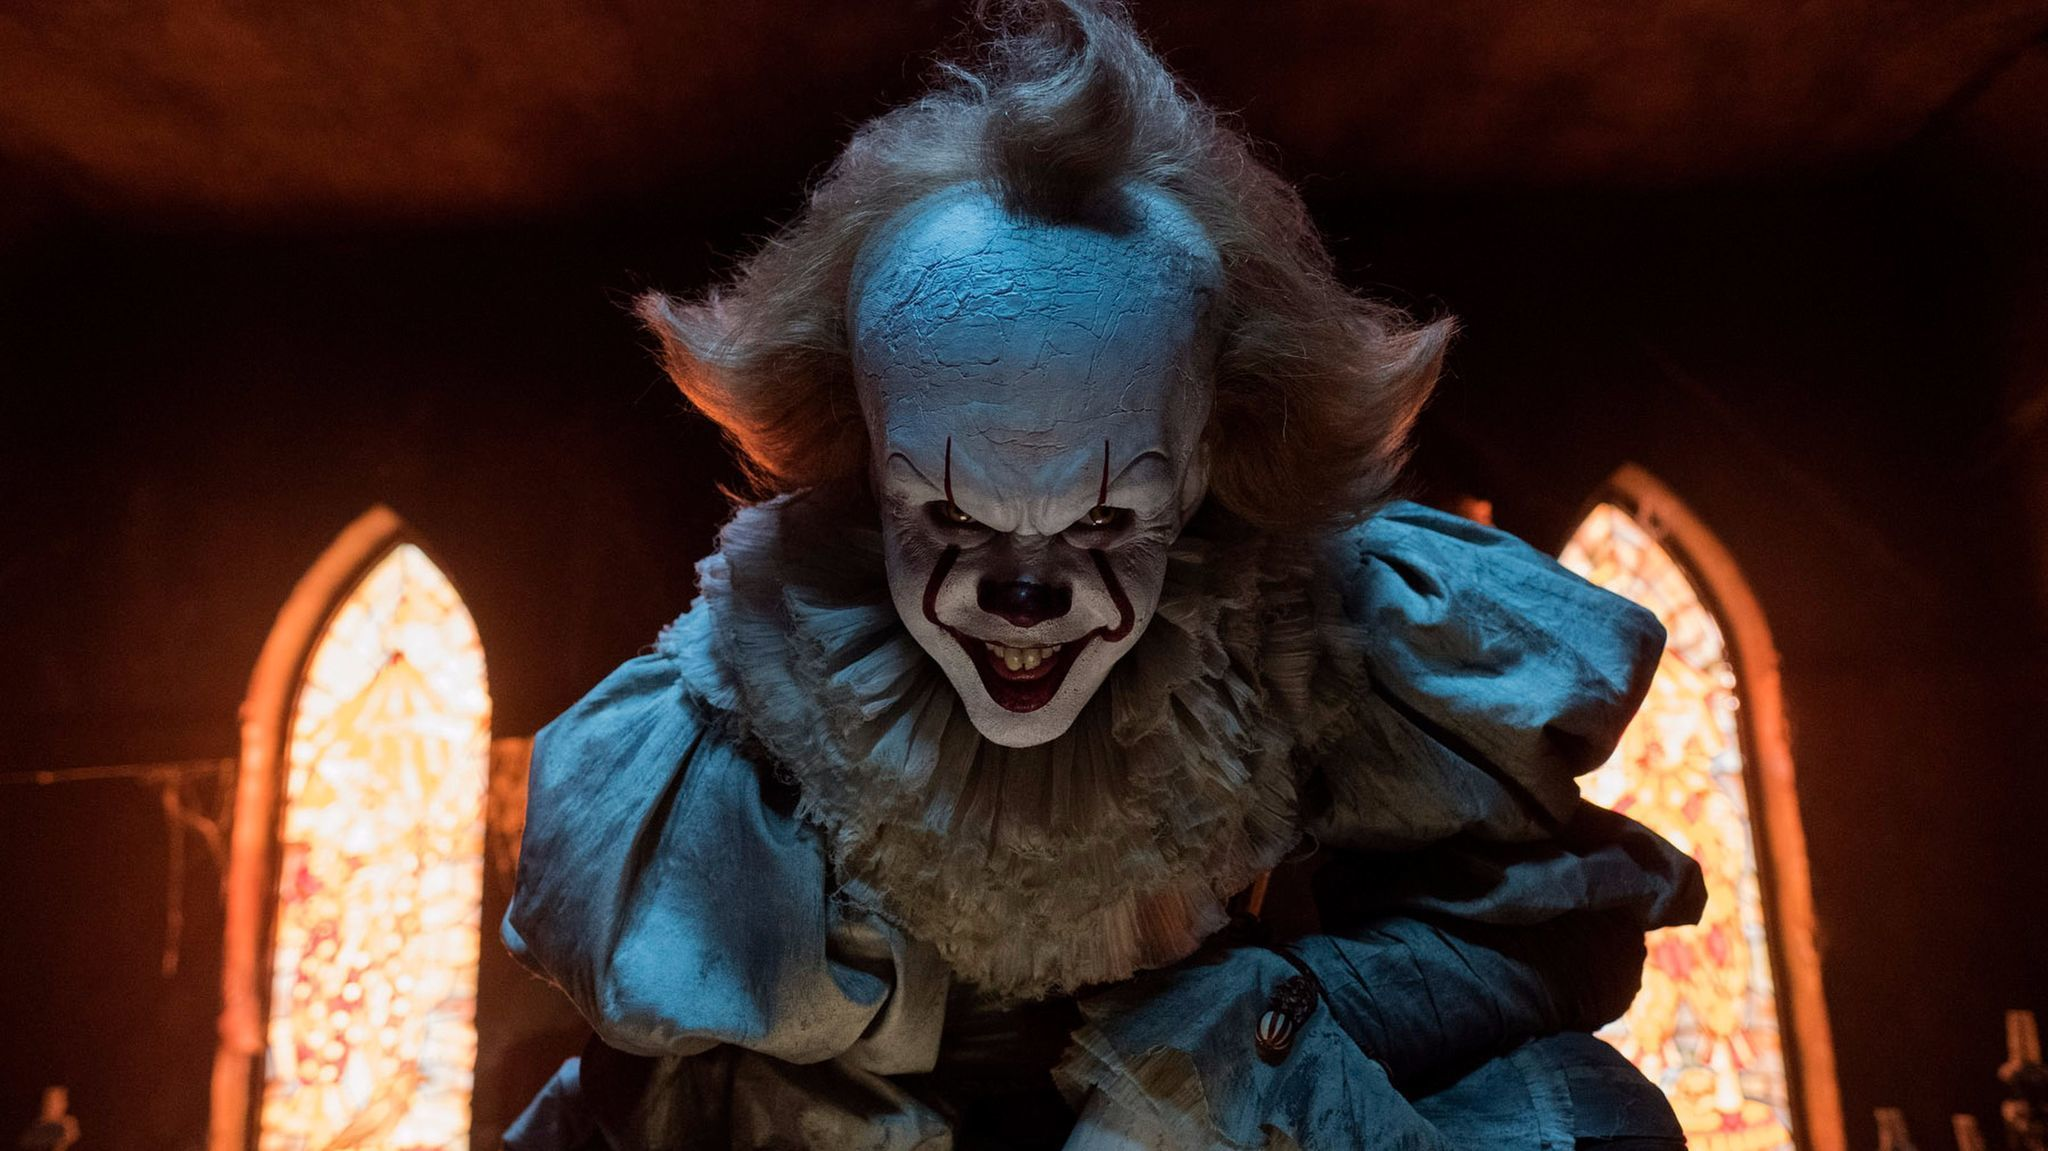 'It' keeps top spot at box office; newcomers 'American Assassin' and 'mother!' trail behind - Los Angeles Times